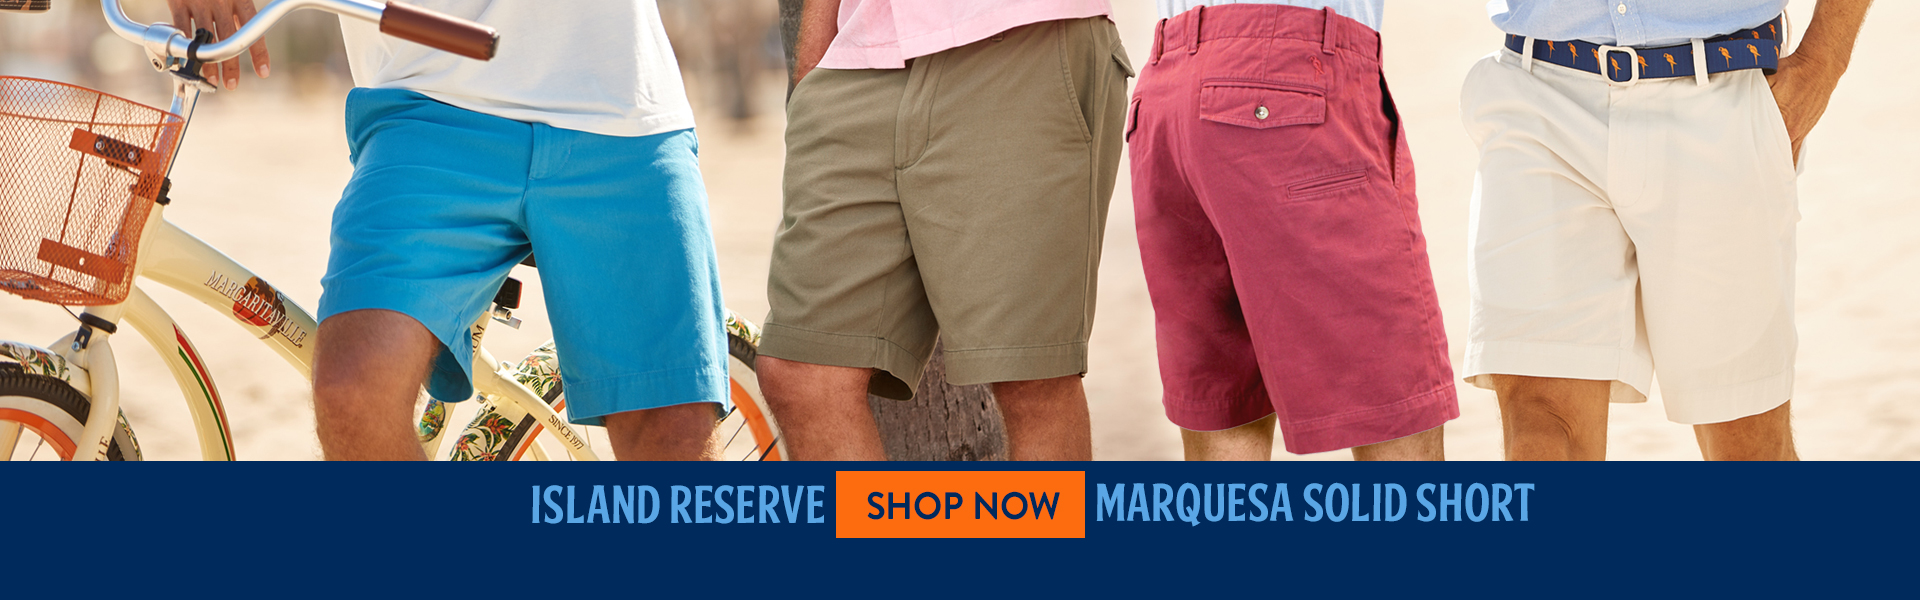 Marquesa Solid Short